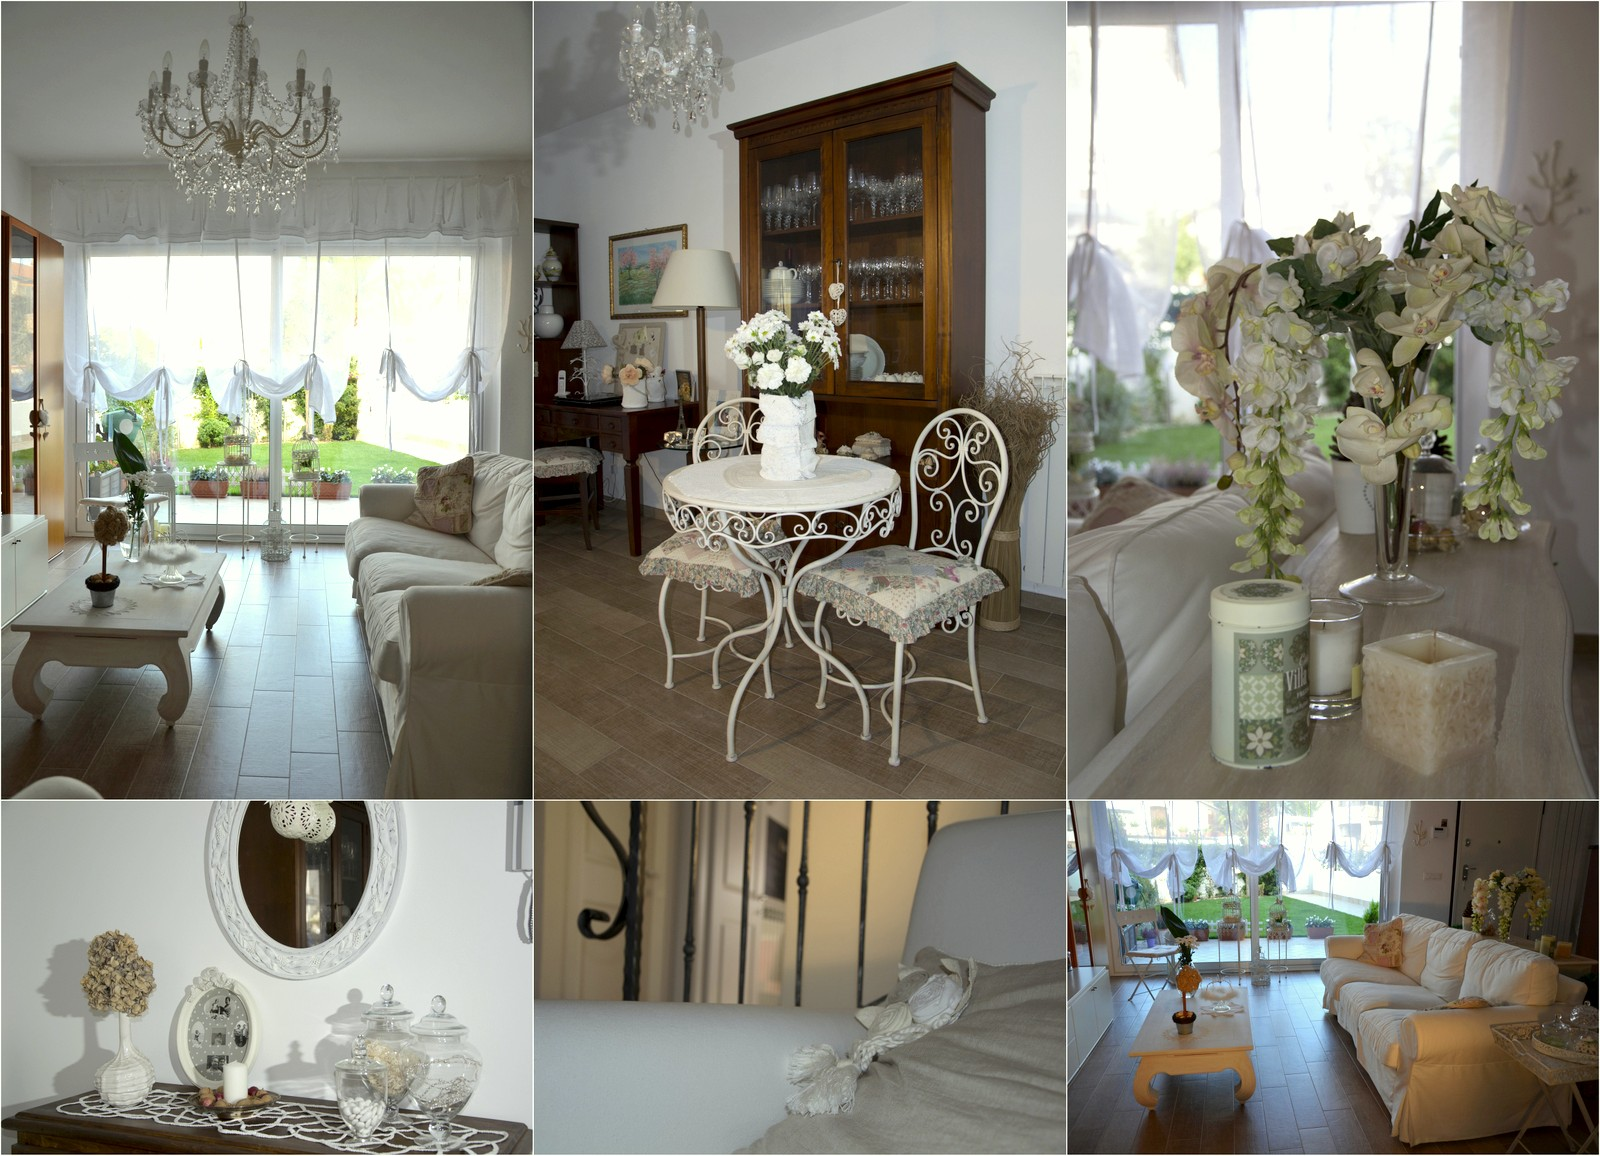 Shabbychiclife la mia casa su casa romantica vuoi fare un tour for Casa stile shabby chic